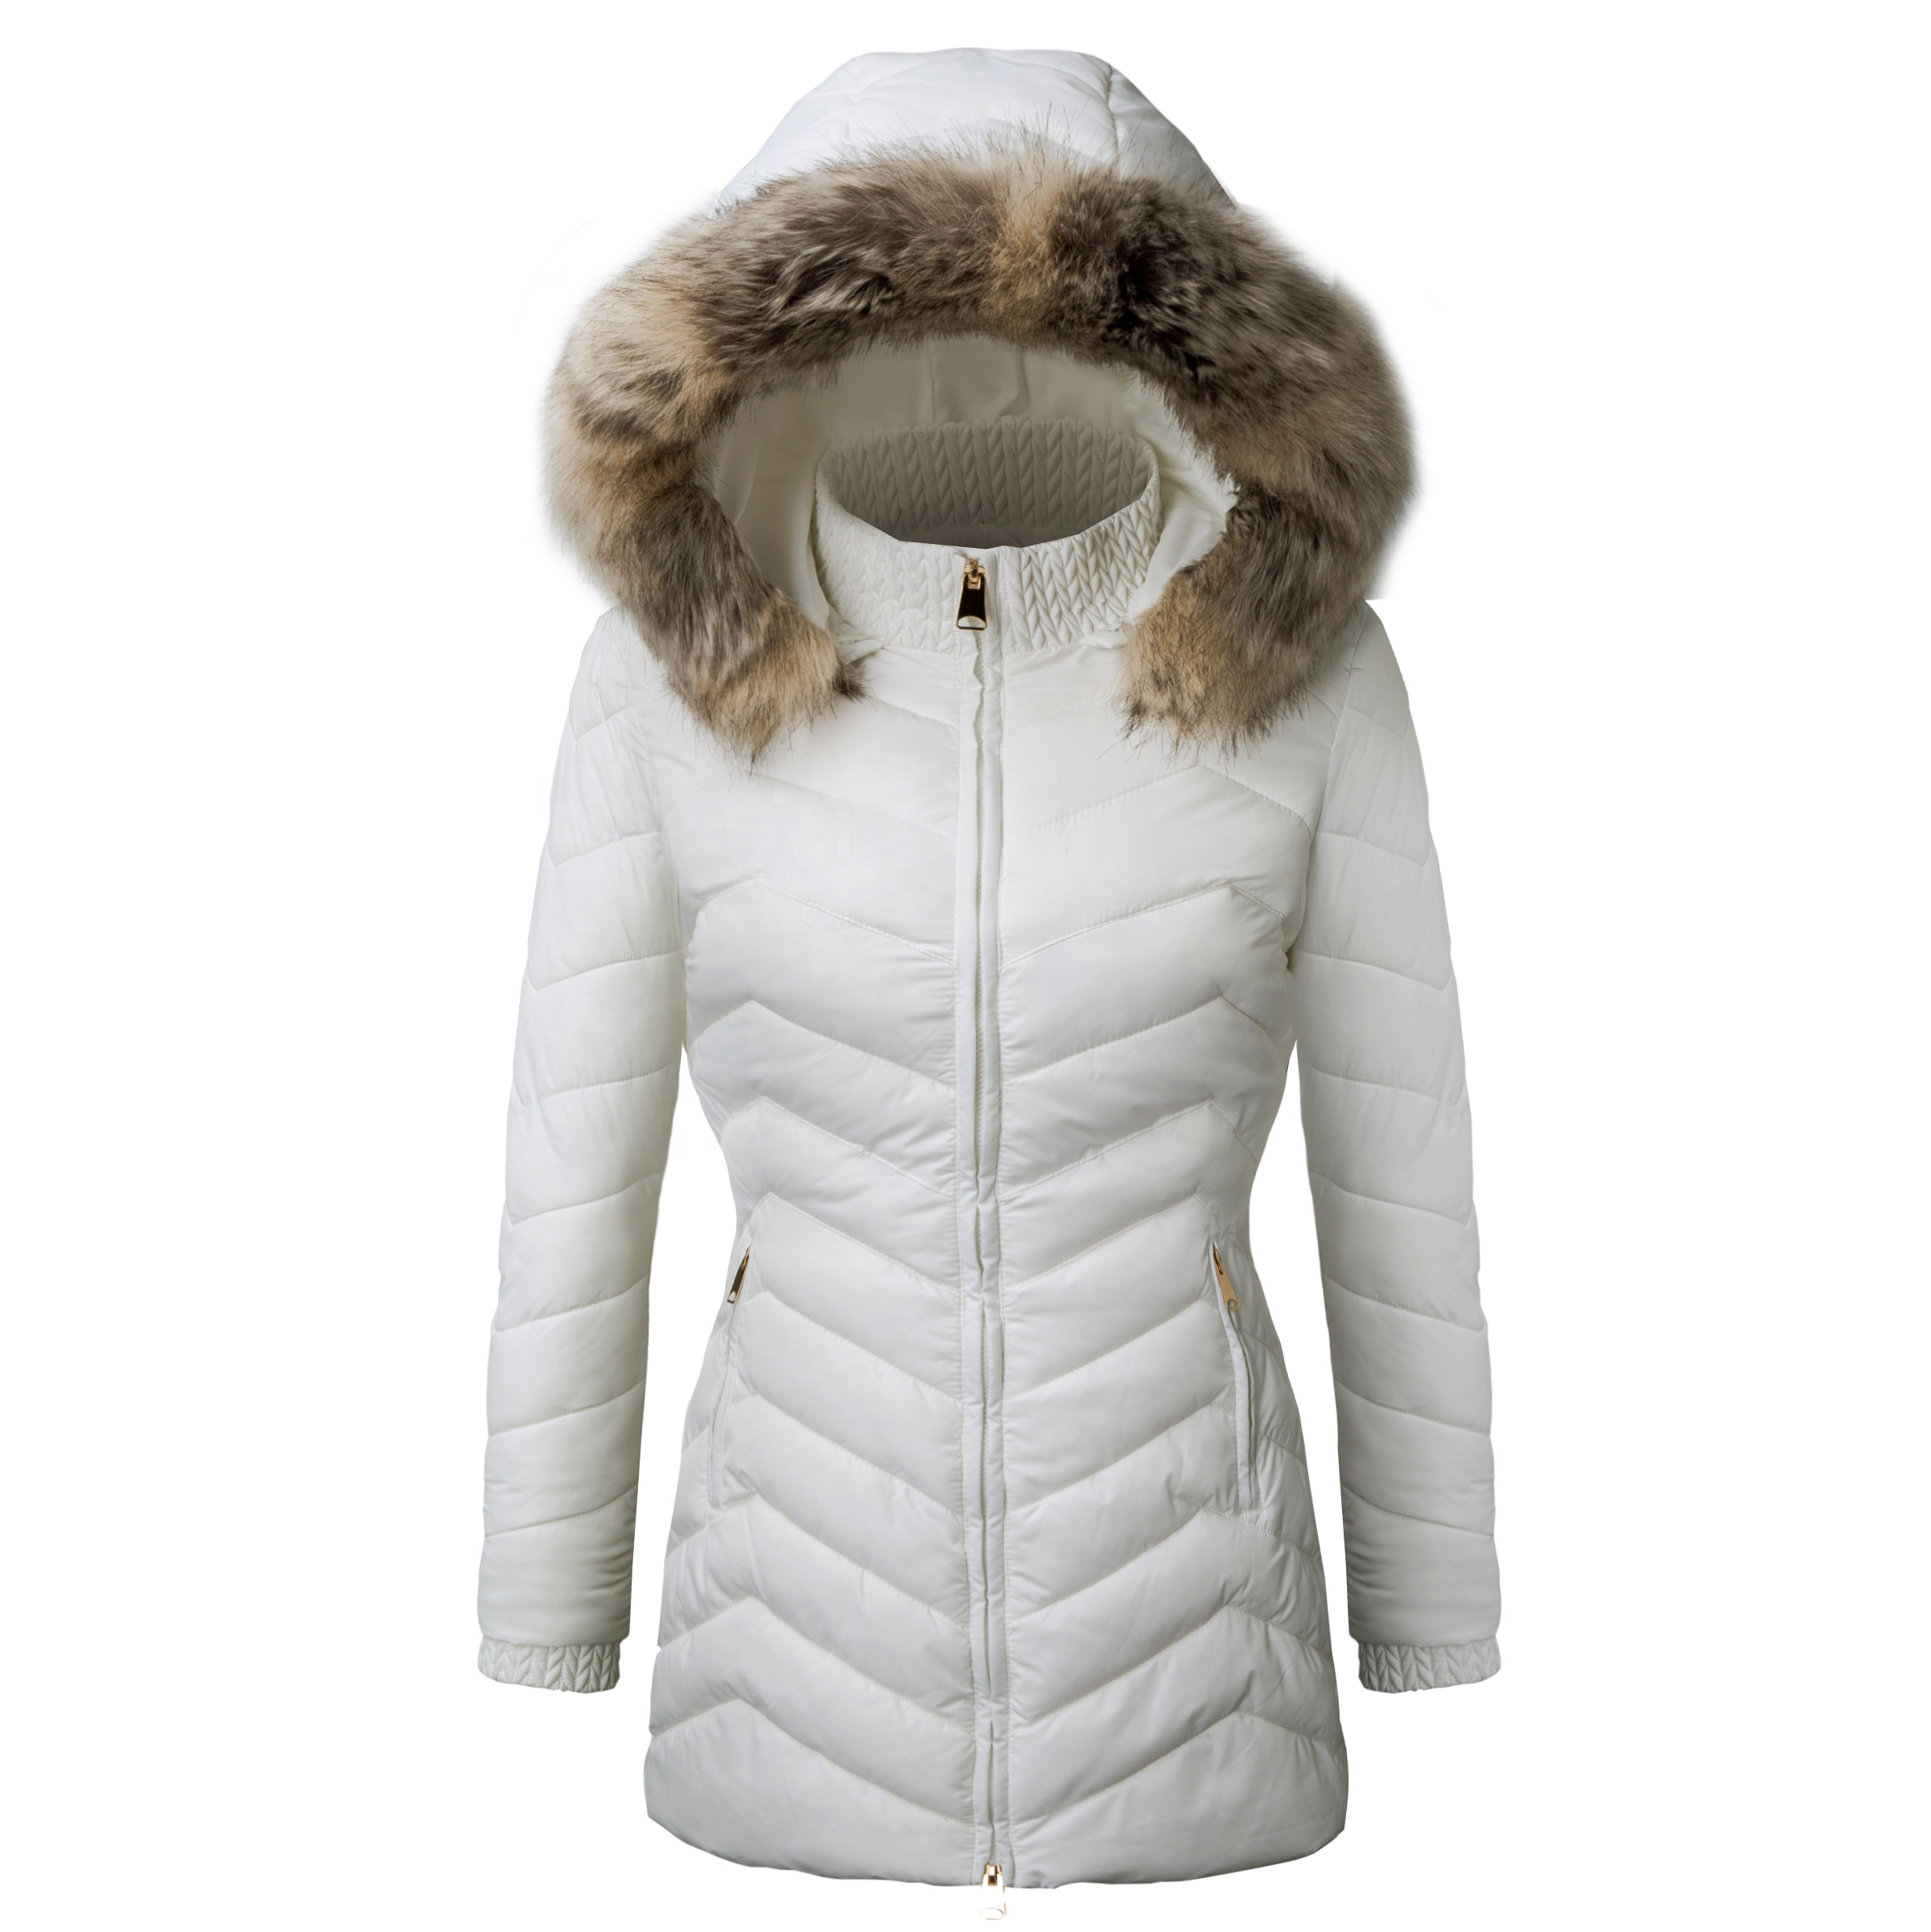 Fashion White Blankwinter Custom Fur Women Padding Coat Jacket Women